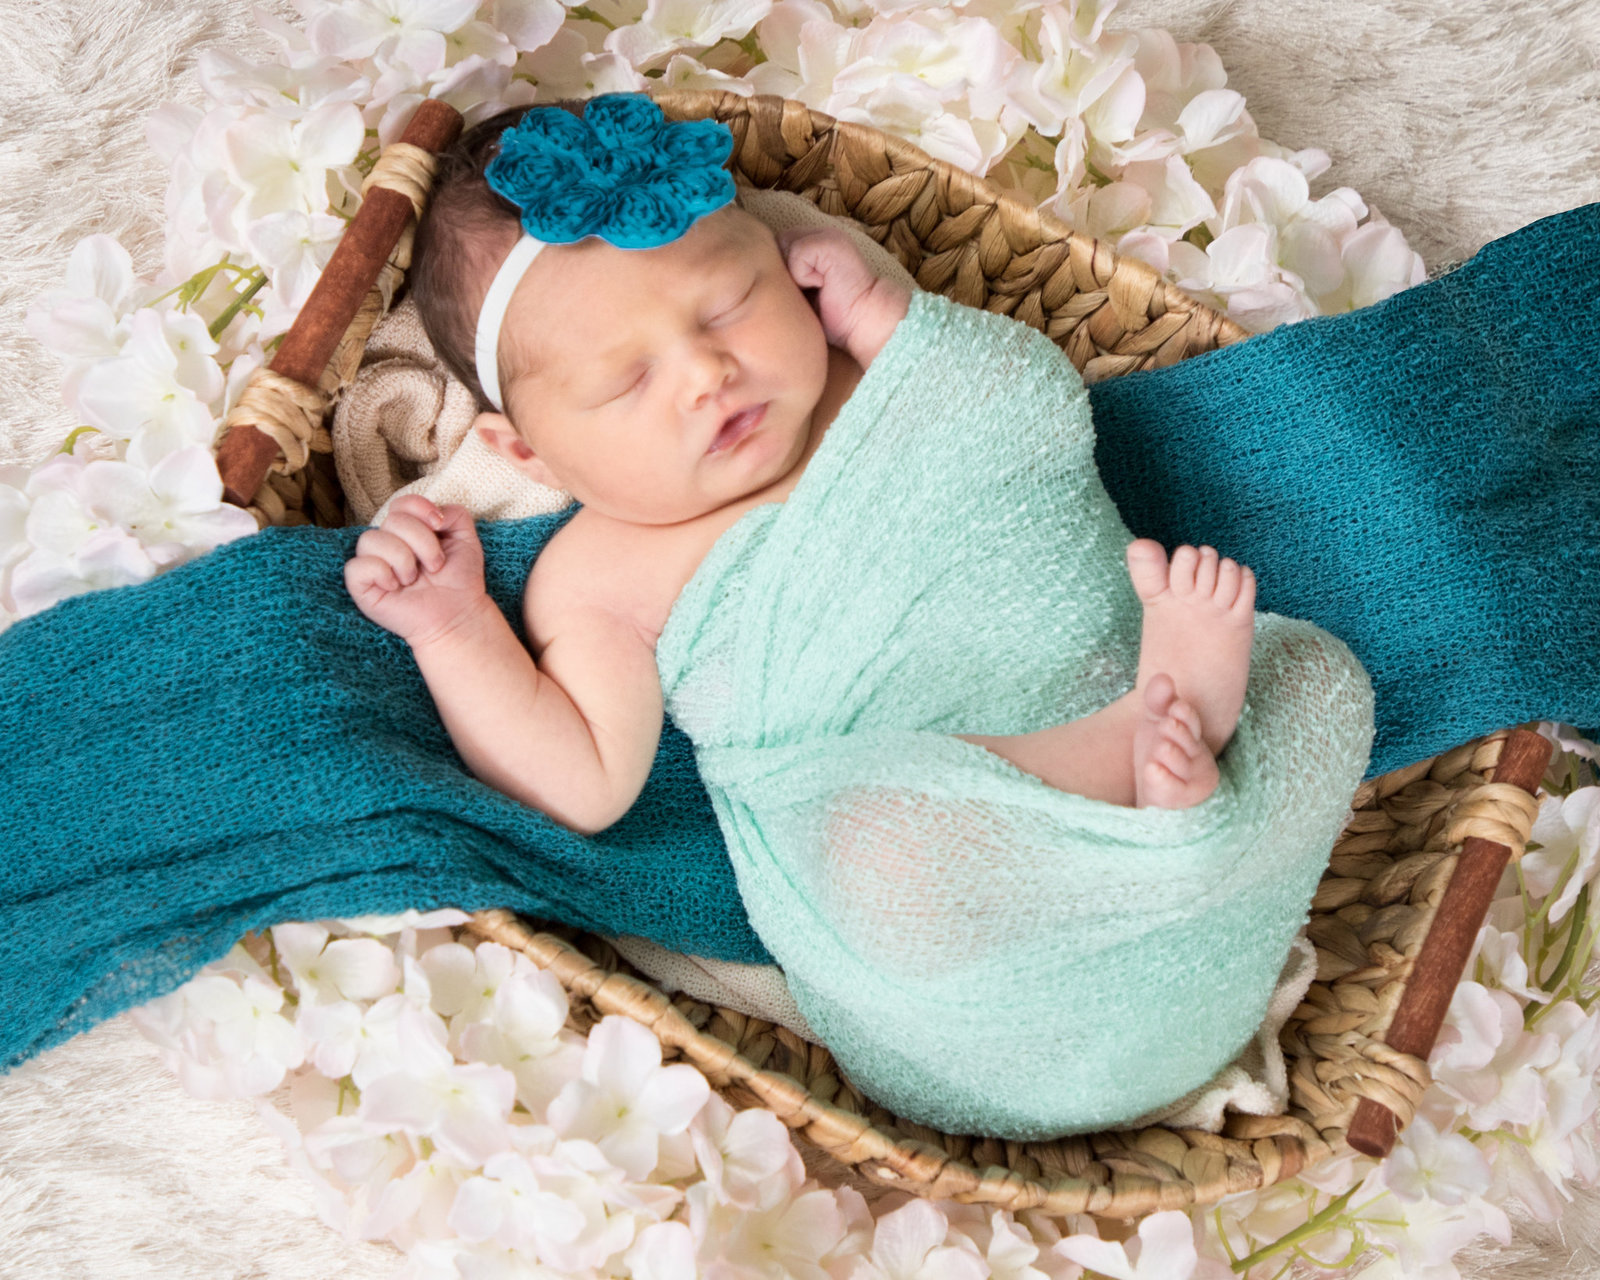 Newborn baby girl in a teal wrap on a basket